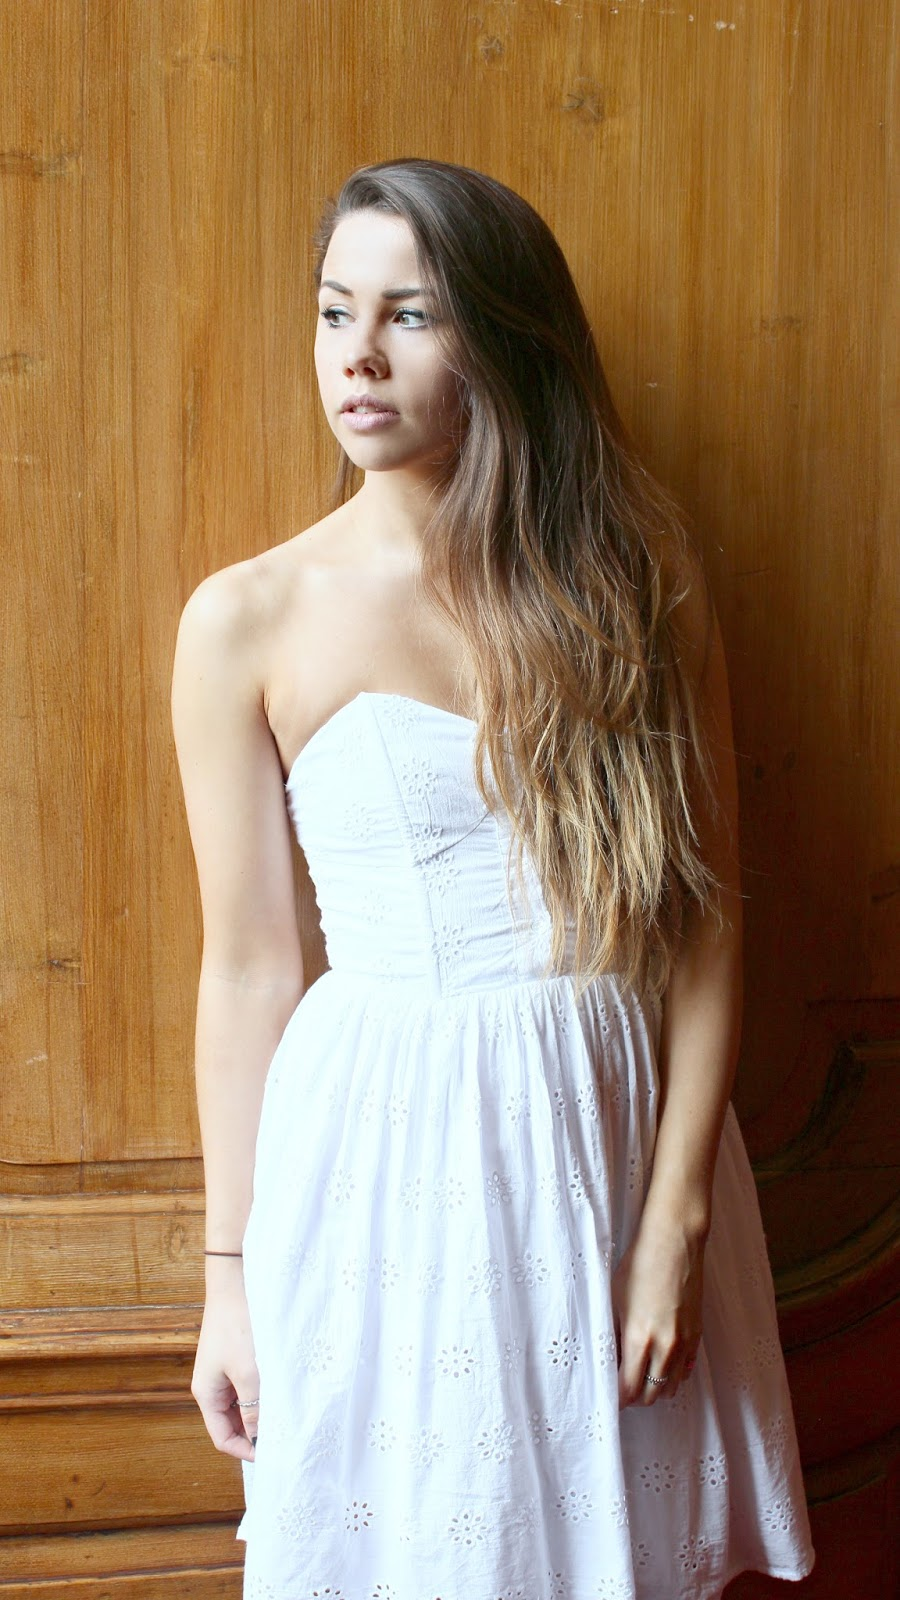 jack wills summer 2016 collection, copper garden, fashion and lifestyle blogger, estcourt dress, smart casual white dress,